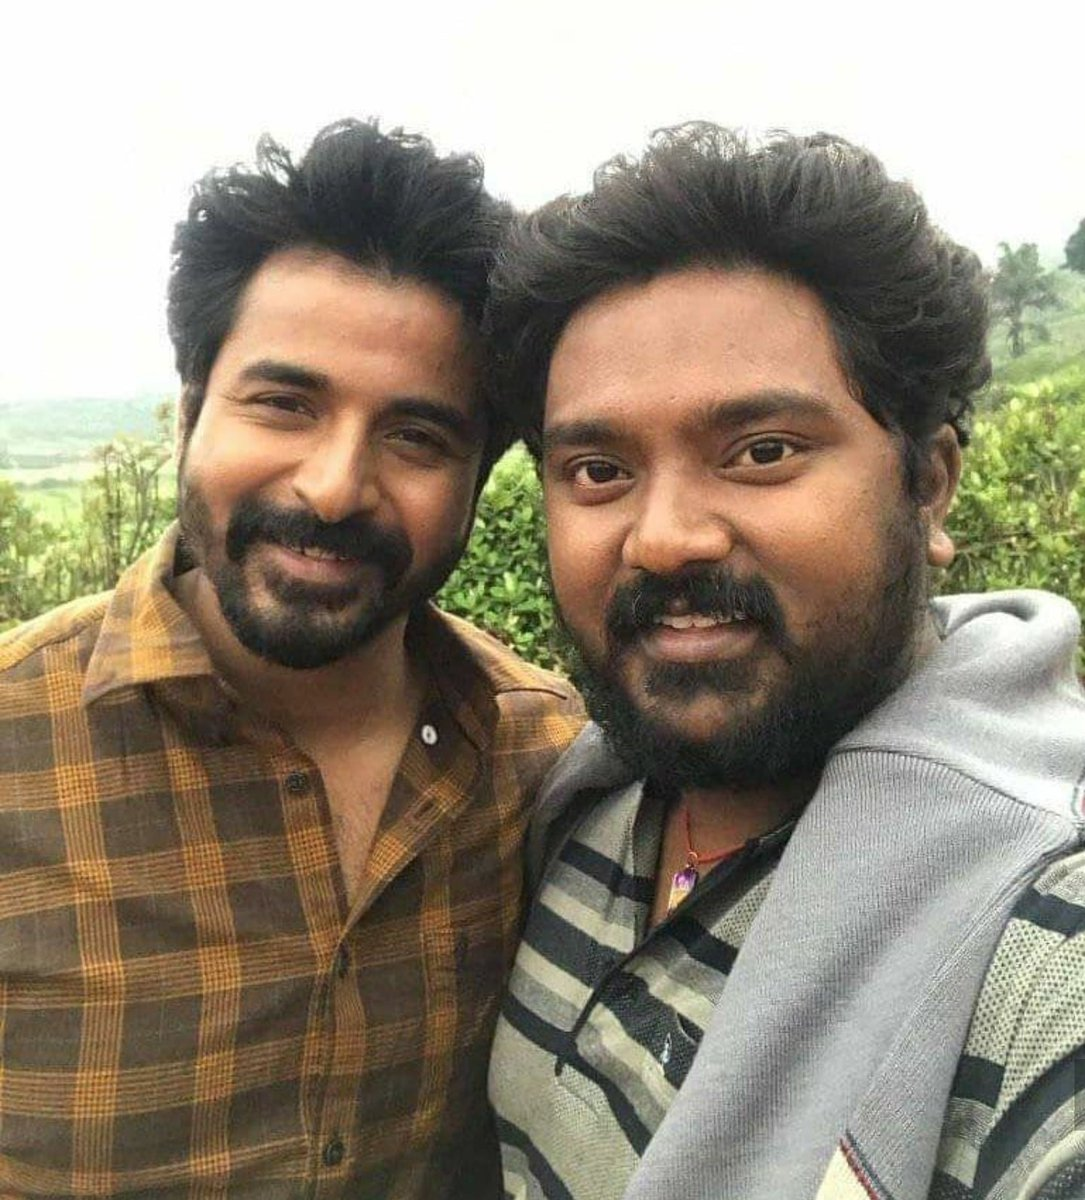 #Unseen picture of  @Siva_Kartikeyan anna  And @Bala_actor brother   #Ayalaan #DOCTOR   @AllIndiaSKFC @AnandSkfc @vimalraj9524 @Mersalsiva__  @SK_Designed_ @Online_SkFcpic.twitter.com/4G1AgPgUFs